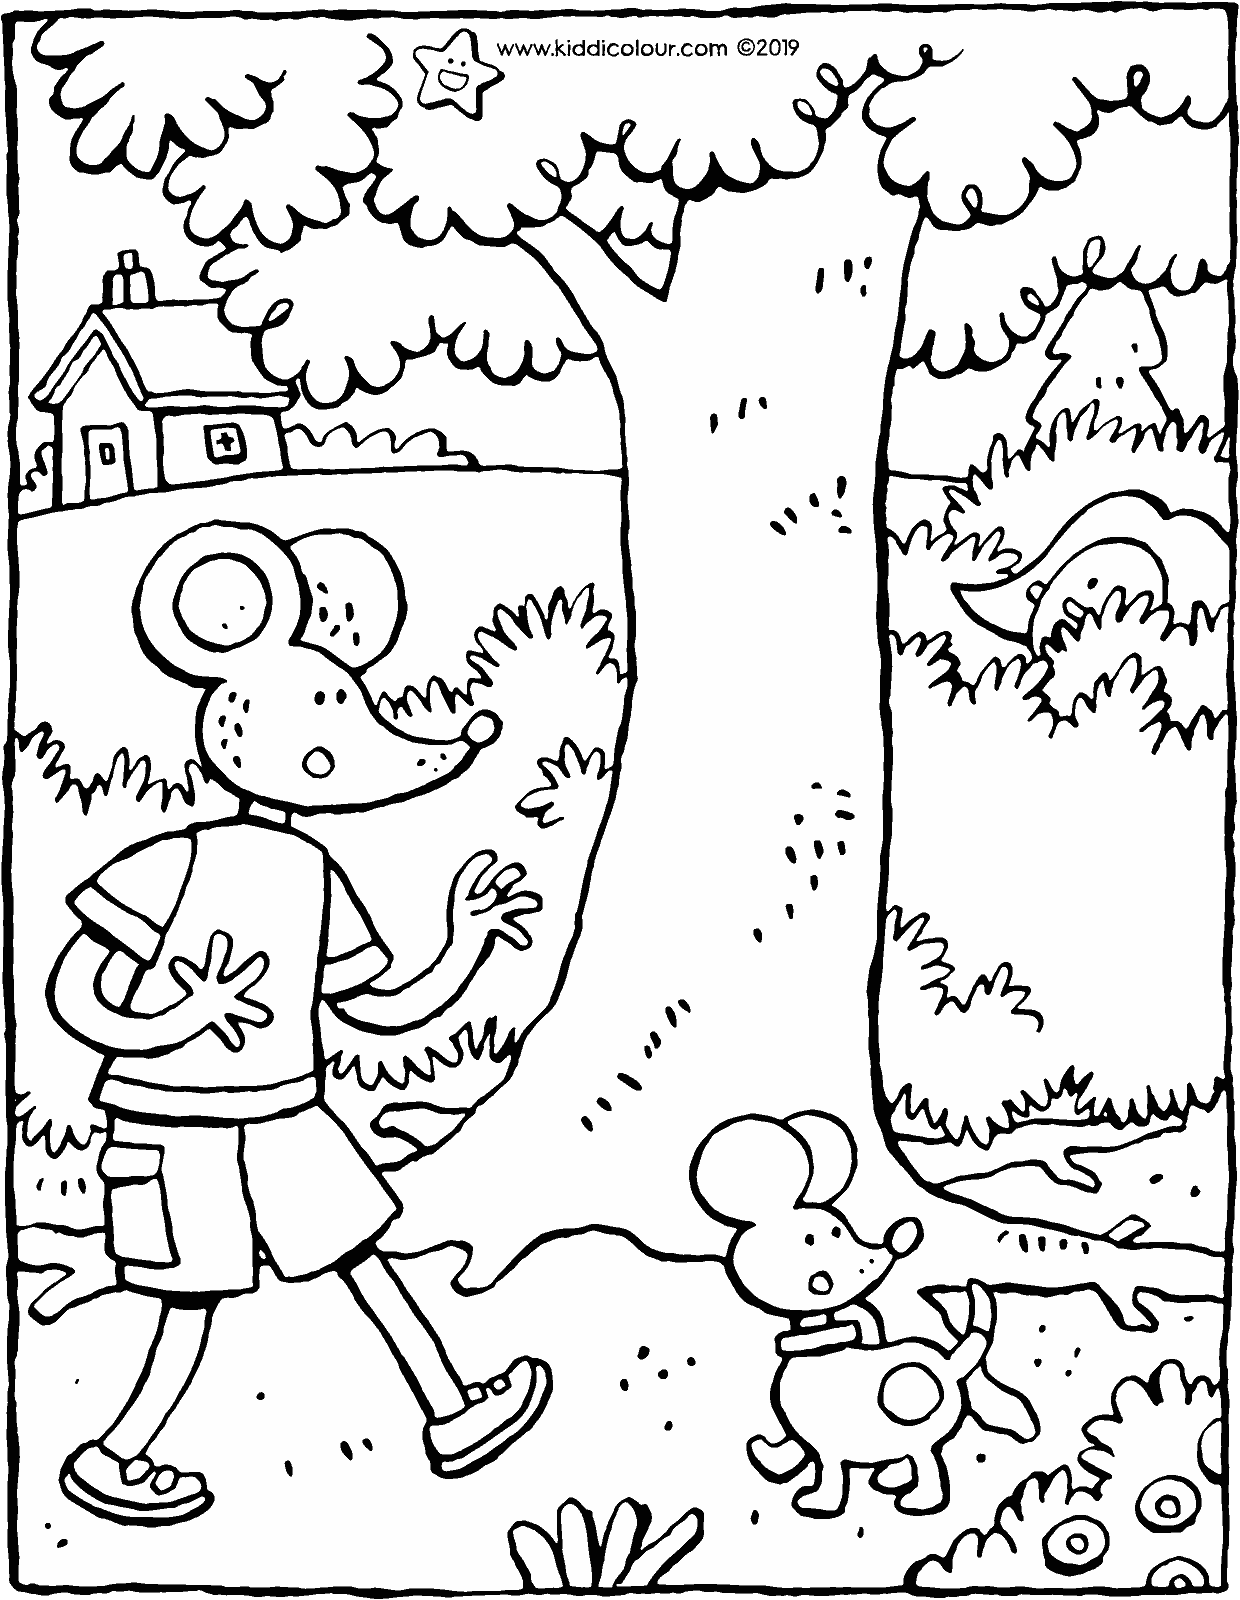 Emma and Thomas play hide-and-seek colouring page drawing picture 01V